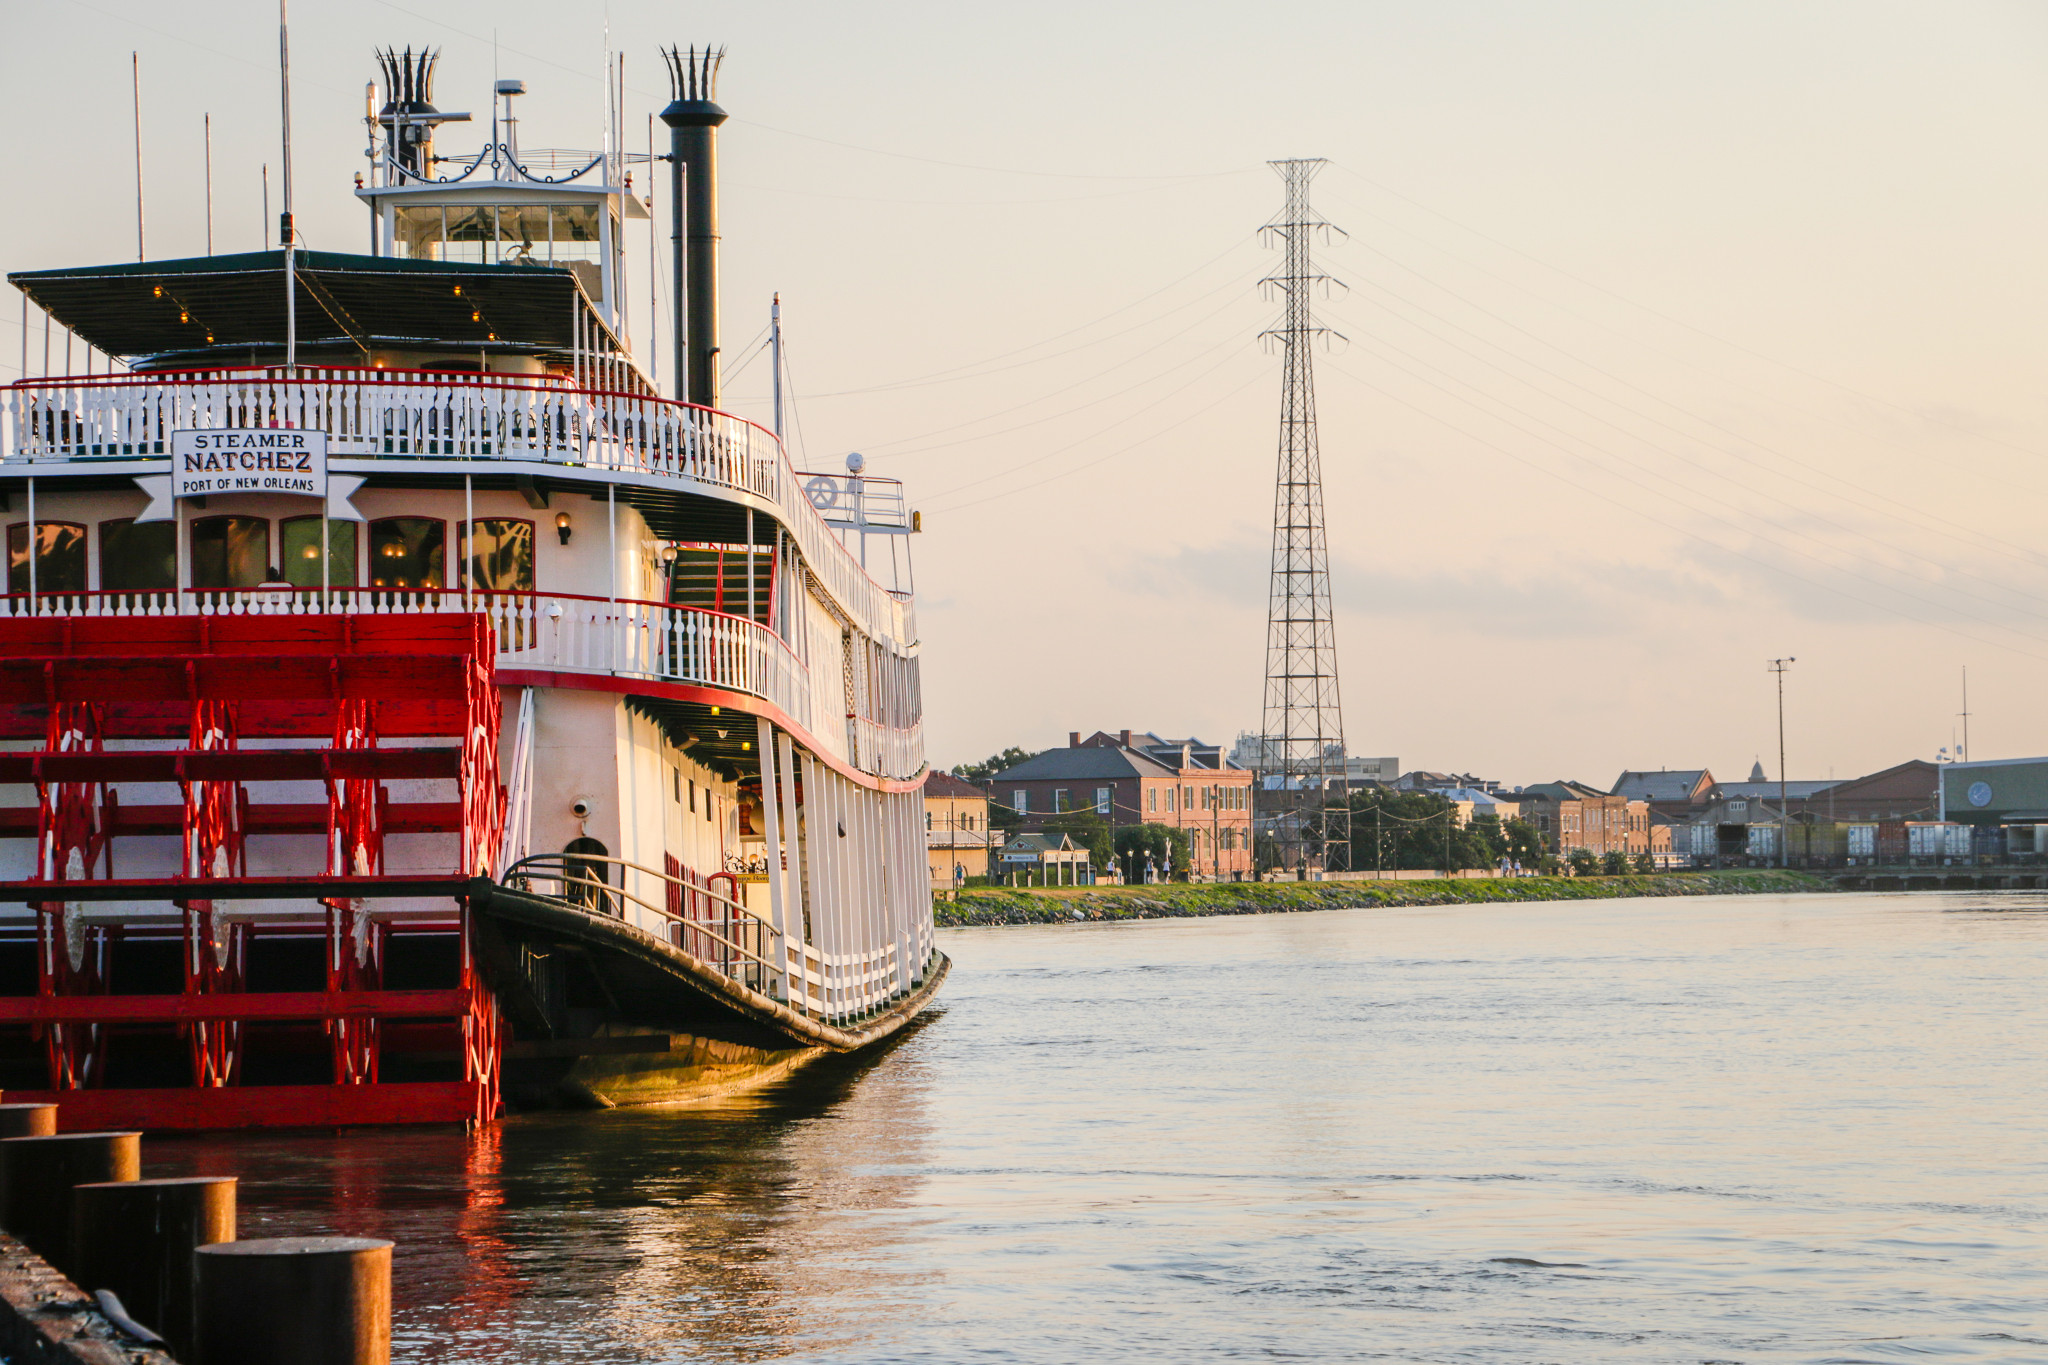 Steamboat Natchez. (Photo: Rebecca Ratliff)